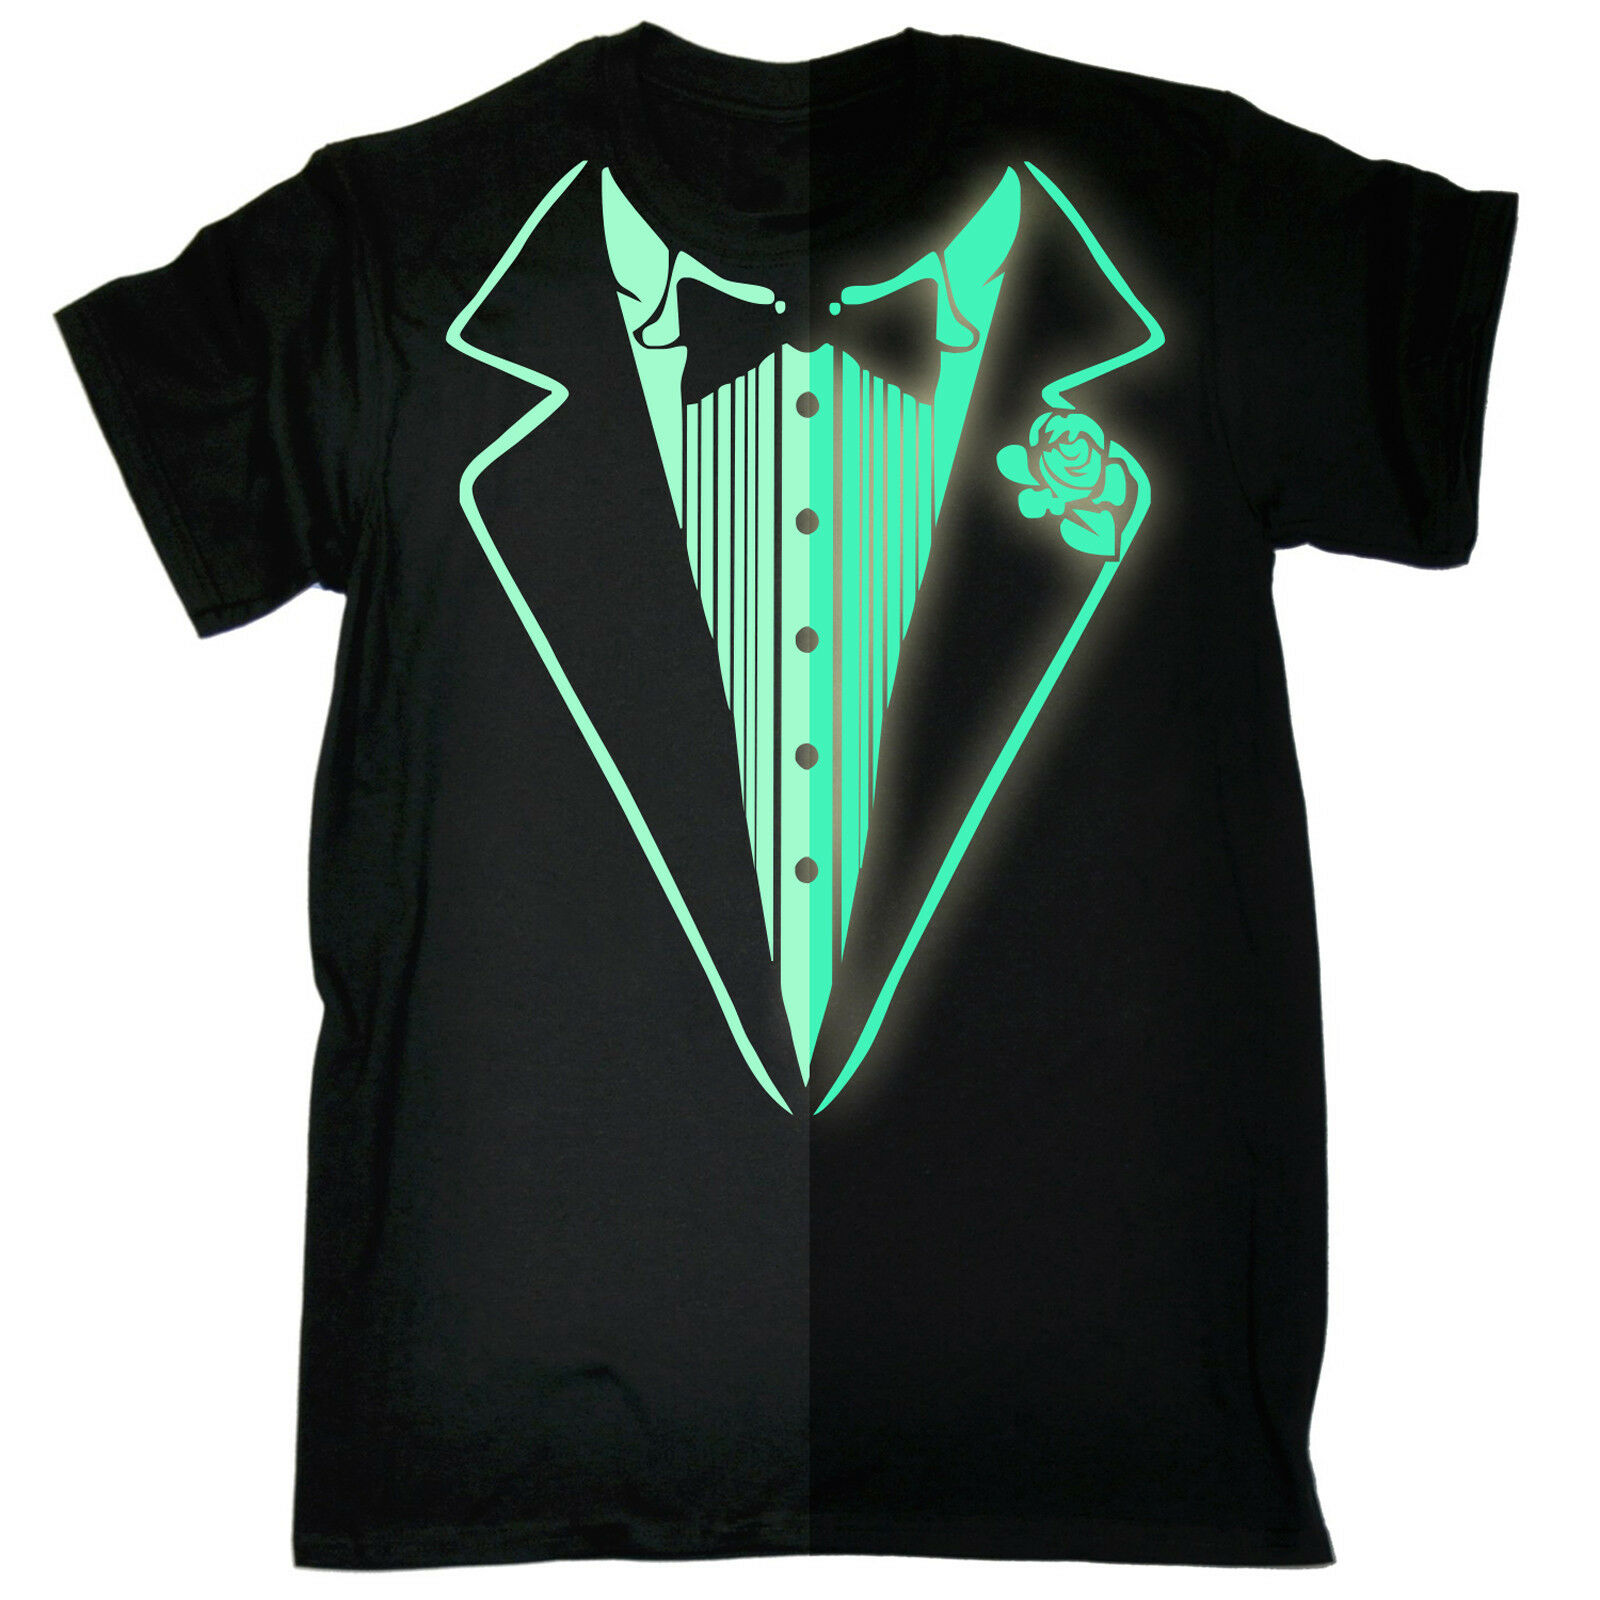 Glow In The Dark Tuxedo MENS T-SHIRT birthday costume fancy dress funny gift